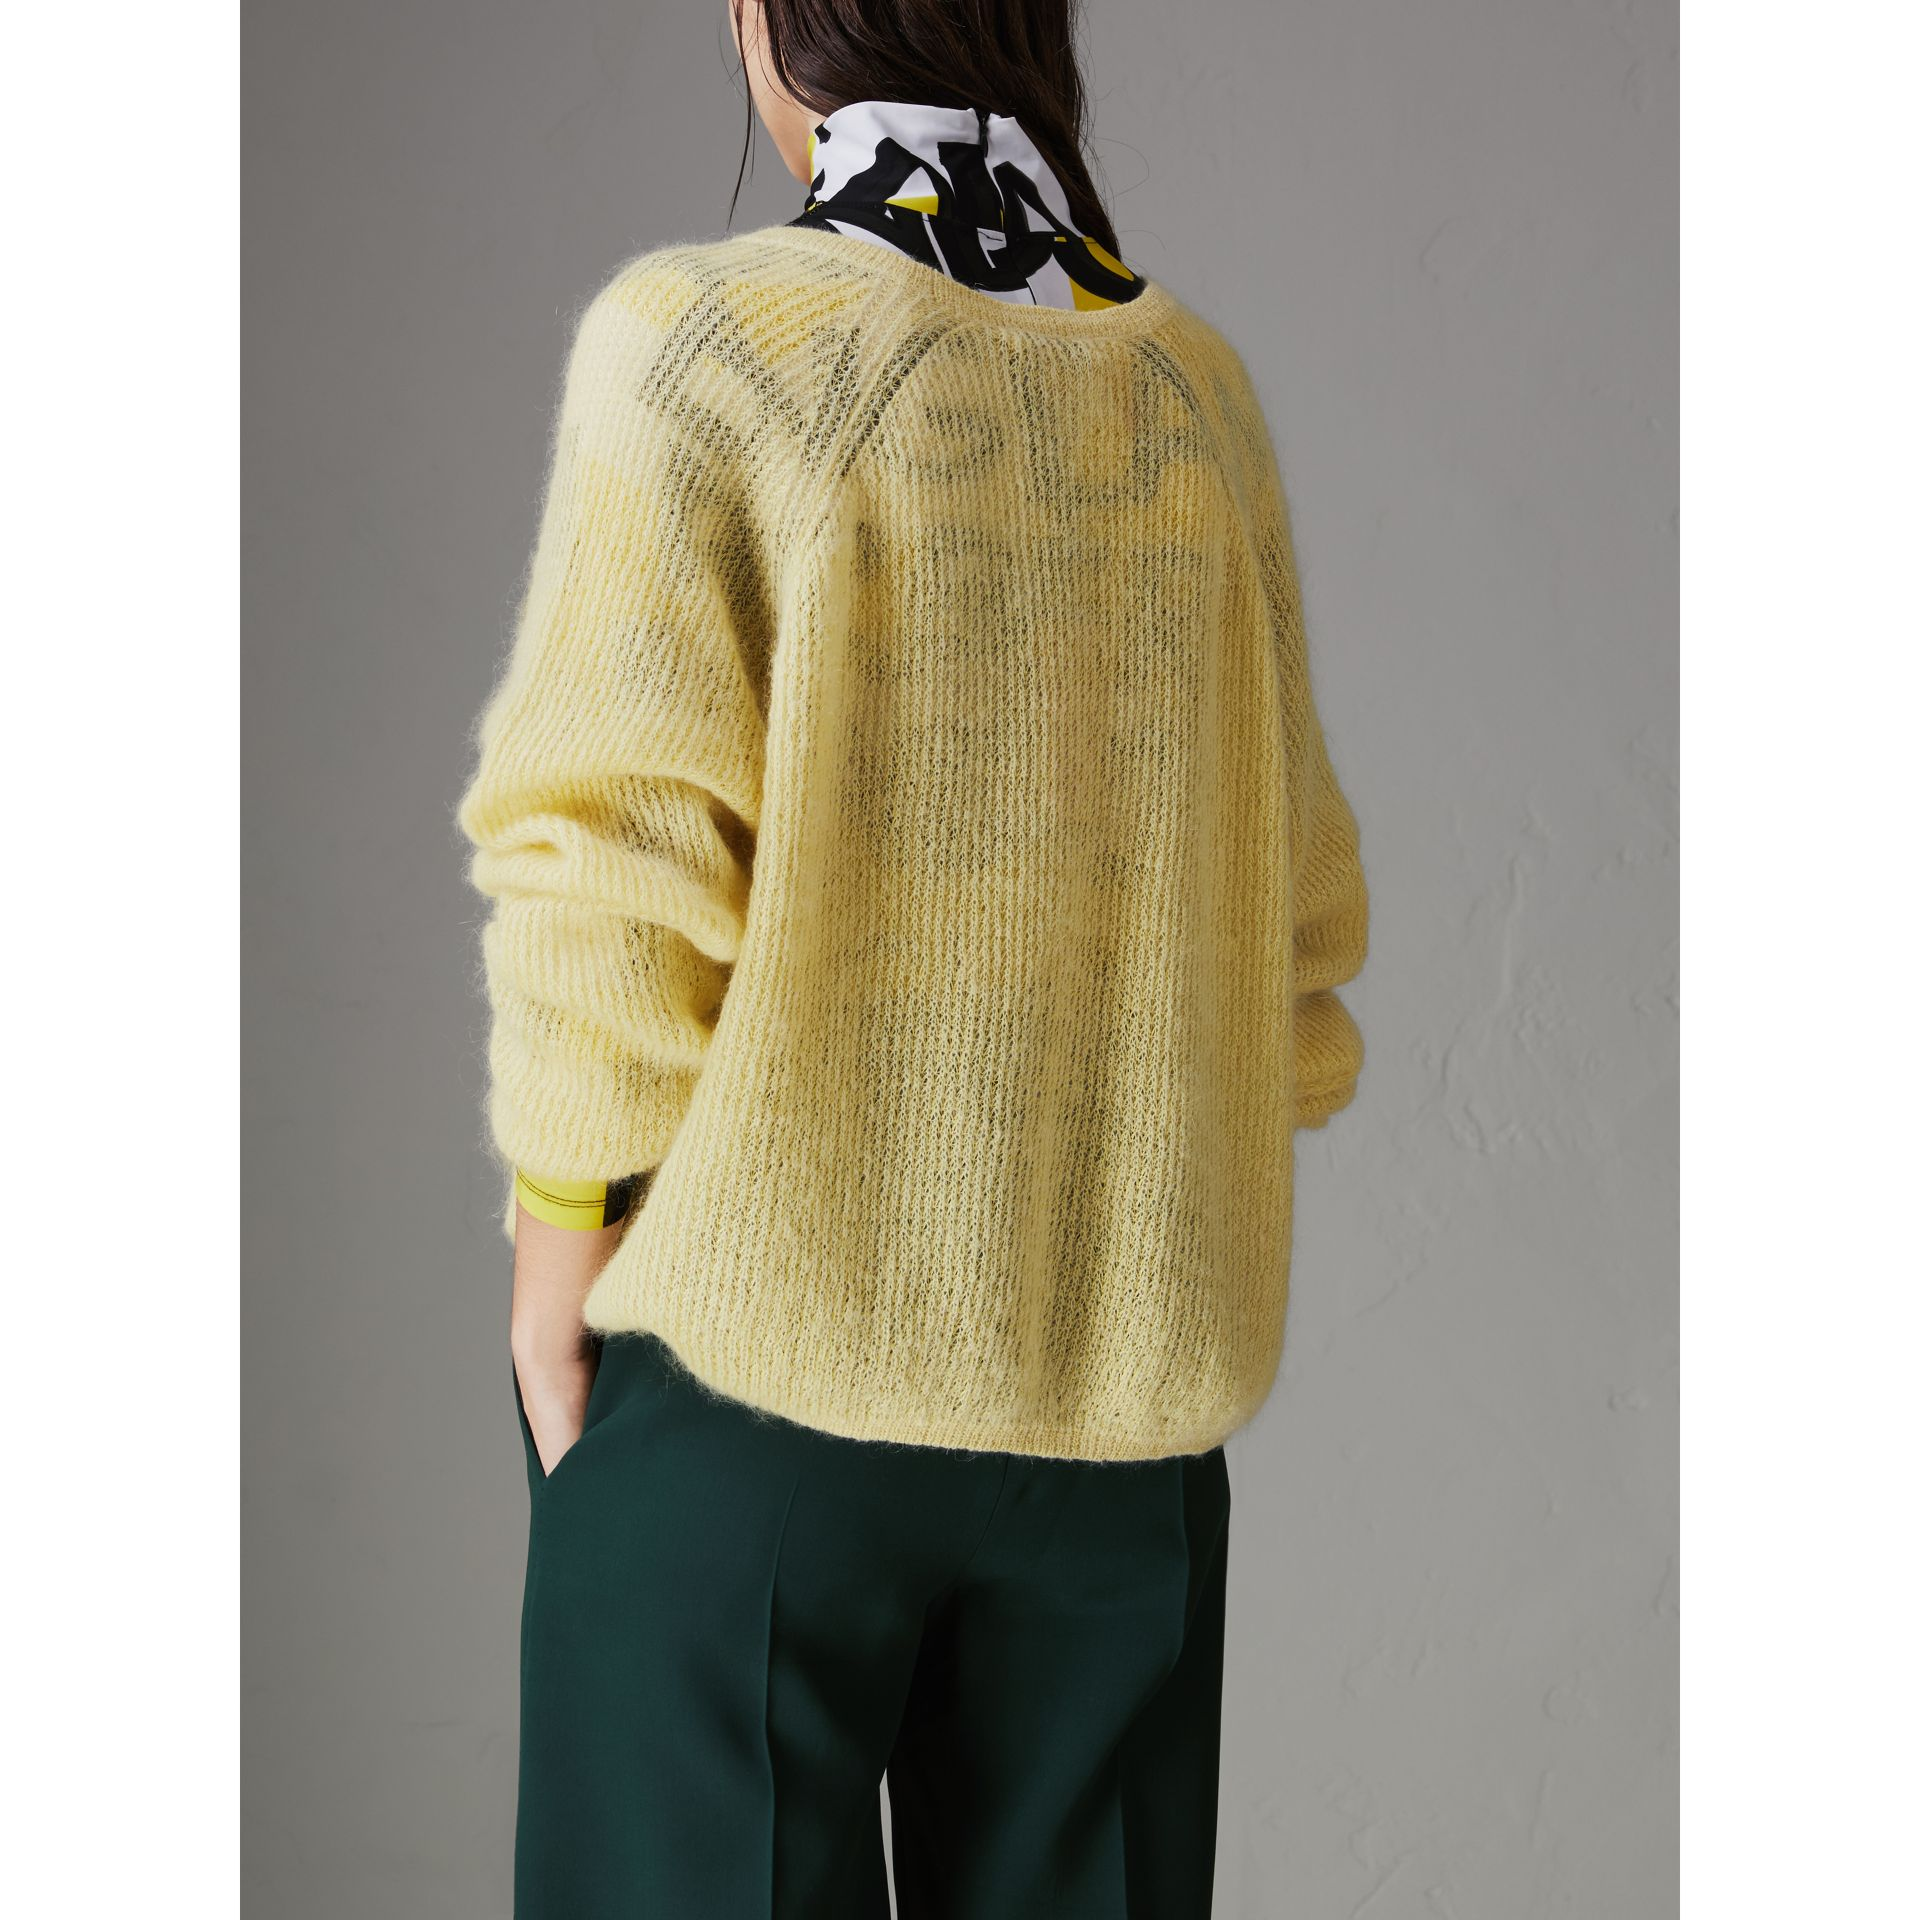 Mohair Silk Blend Sweater in Yellow Barley - Women | Burberry - gallery image 2